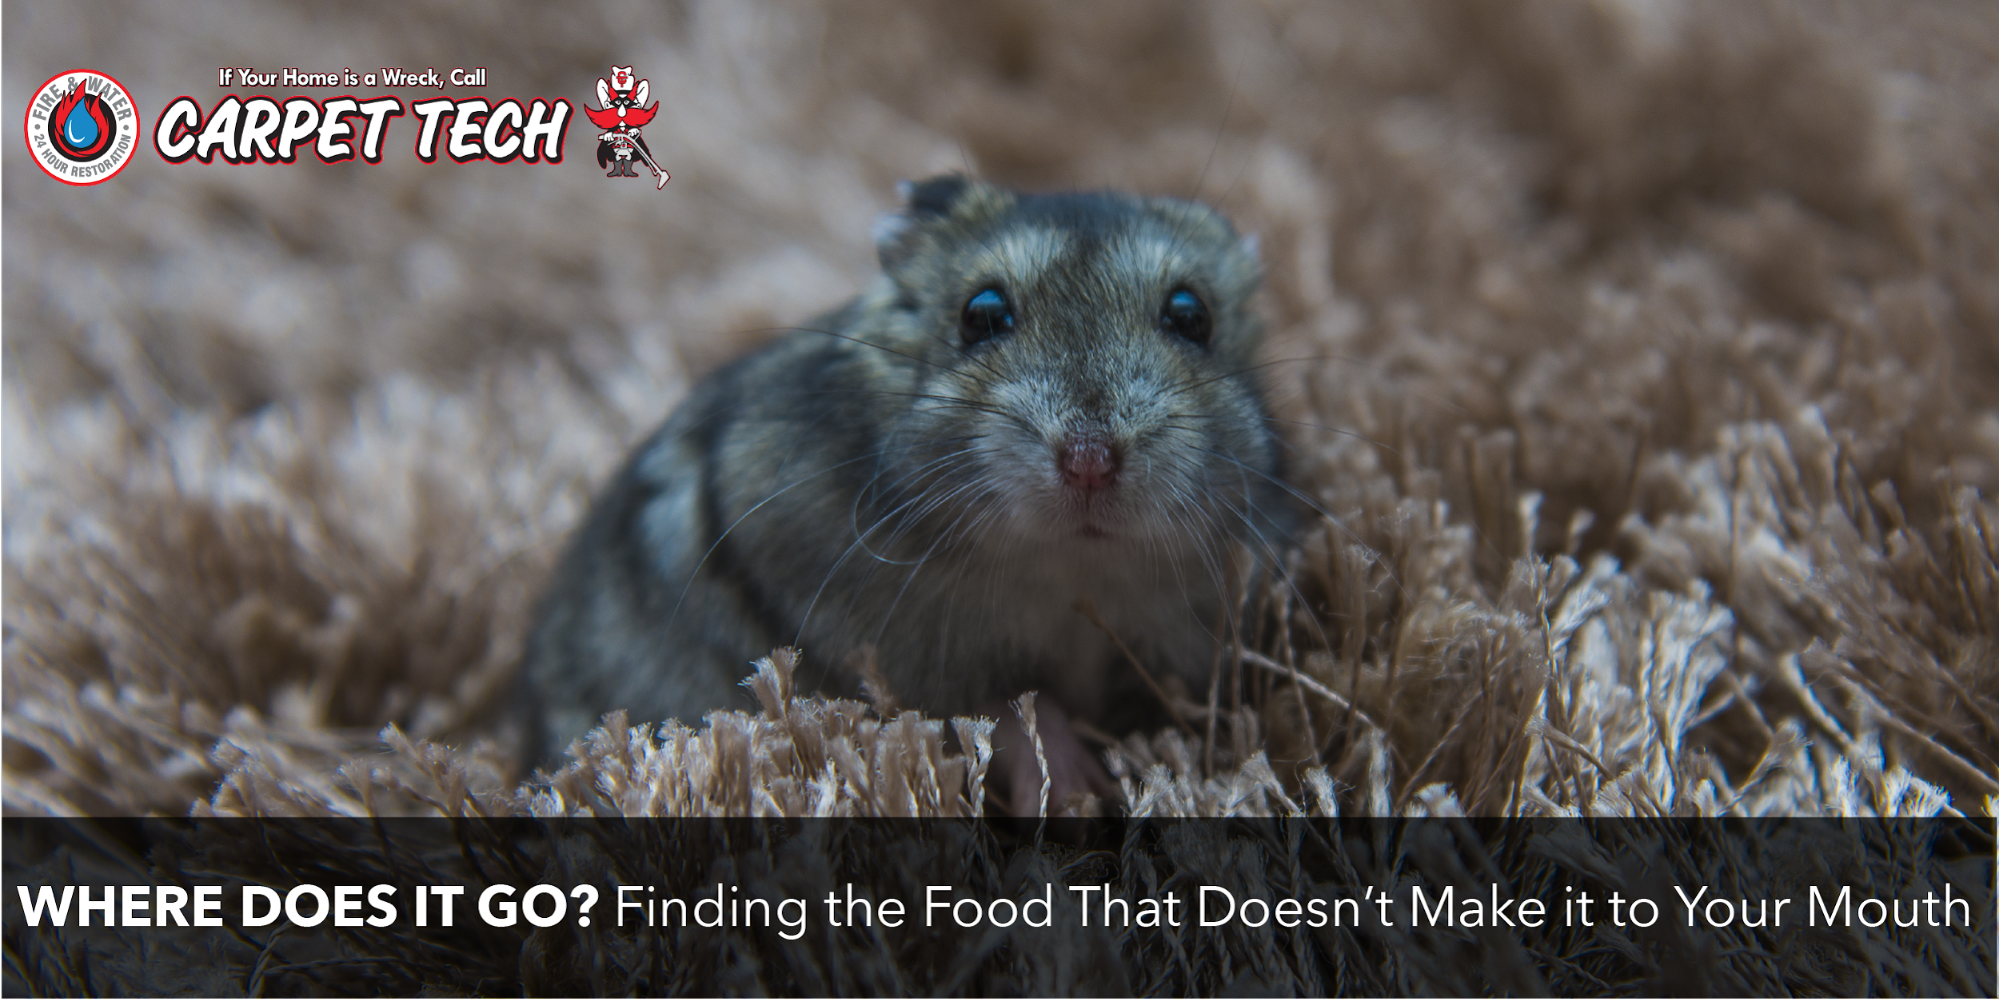 Where Does it Go? Finding the Food That Doesn't Make it to Your Mouth